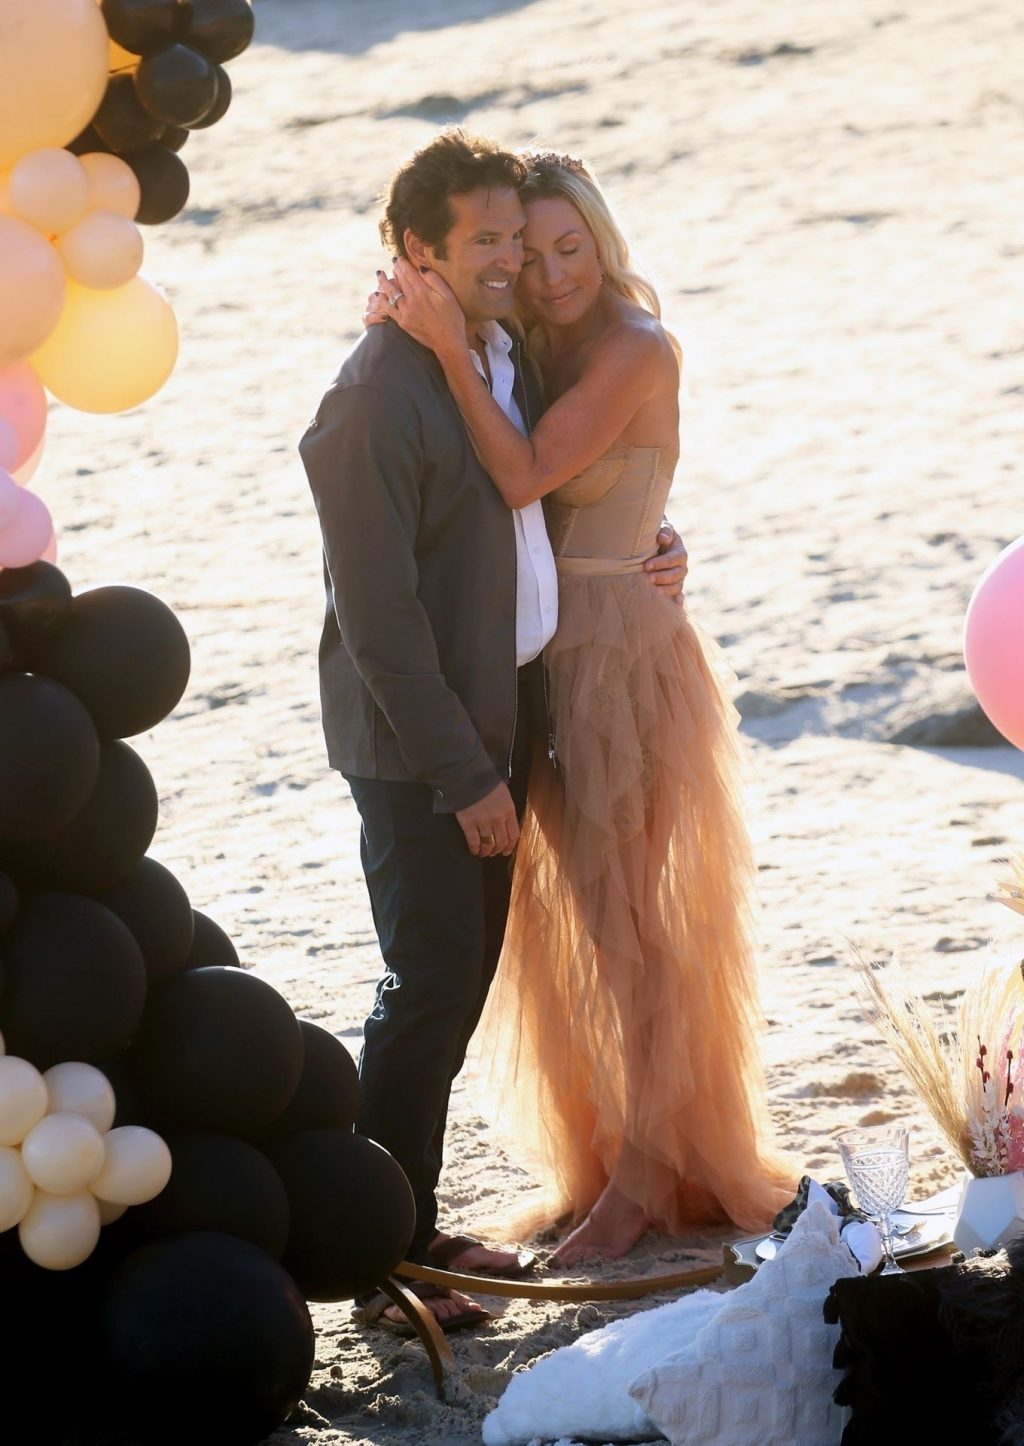 Braunwyn Windham-Burke Celebrates One Year of Sobriety with a Beach Surprise from Sean Burke (65 Photos)